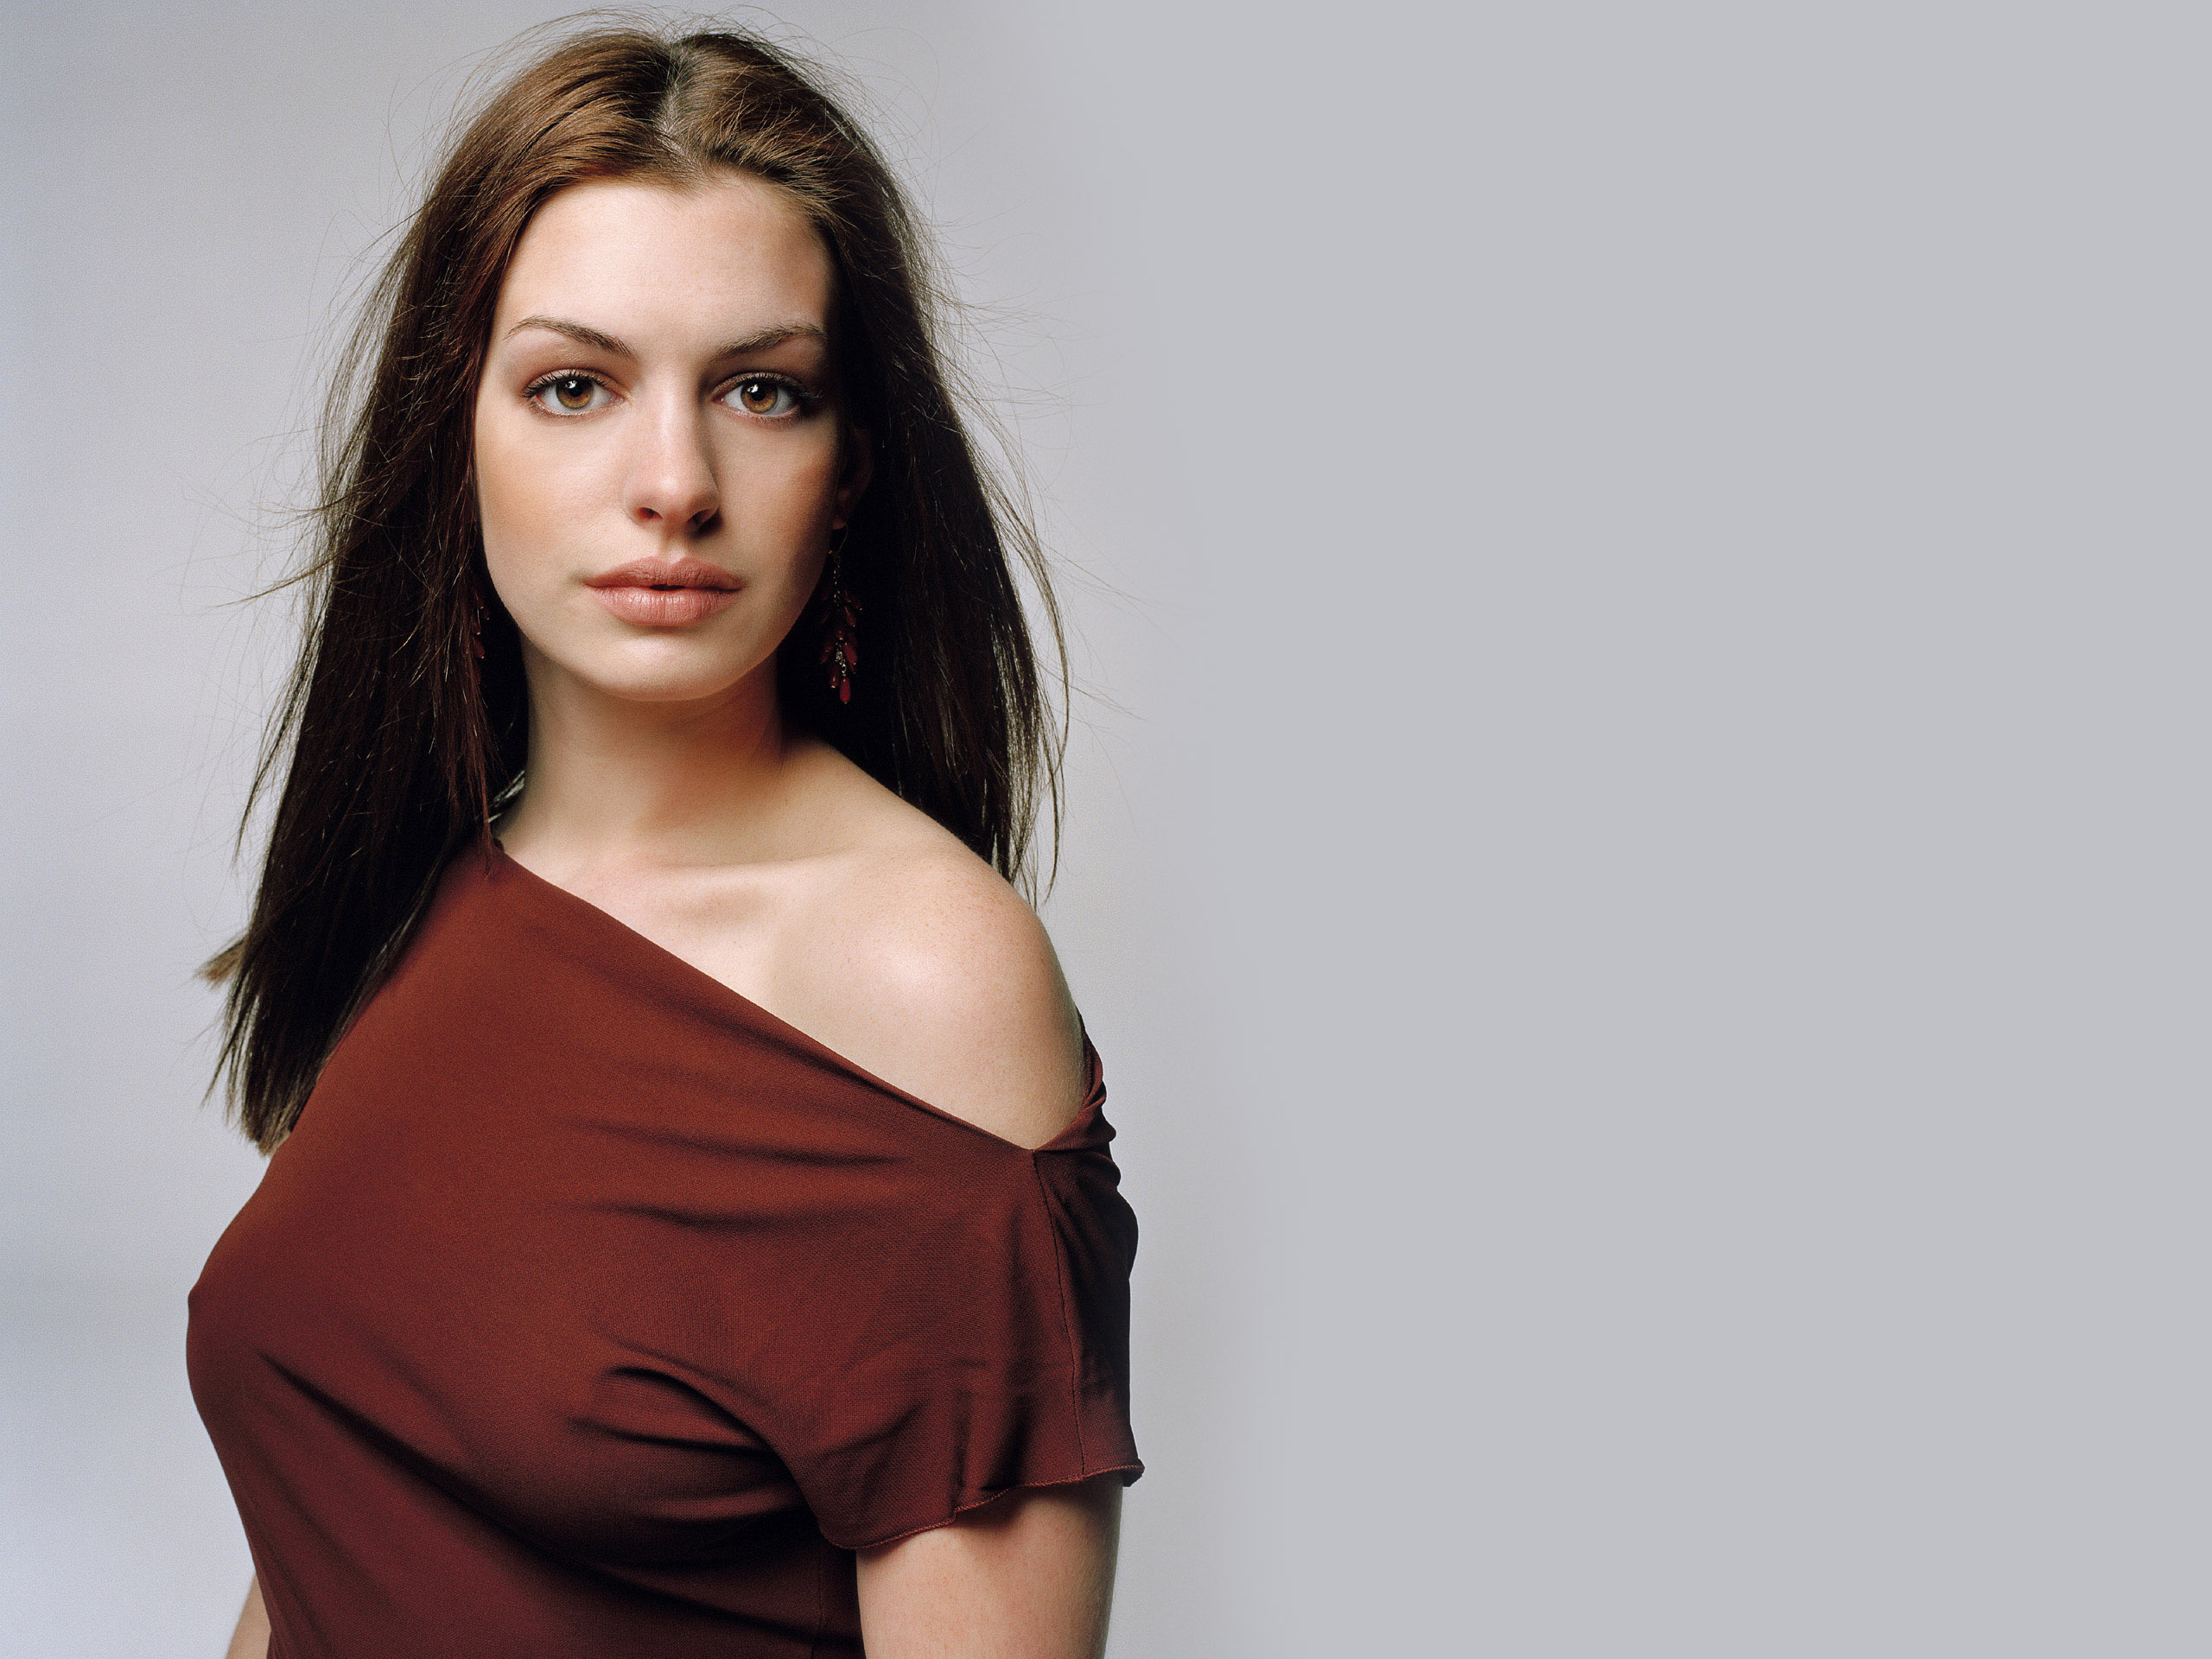 2560x1920 - Anne Hathaway Wallpapers 17